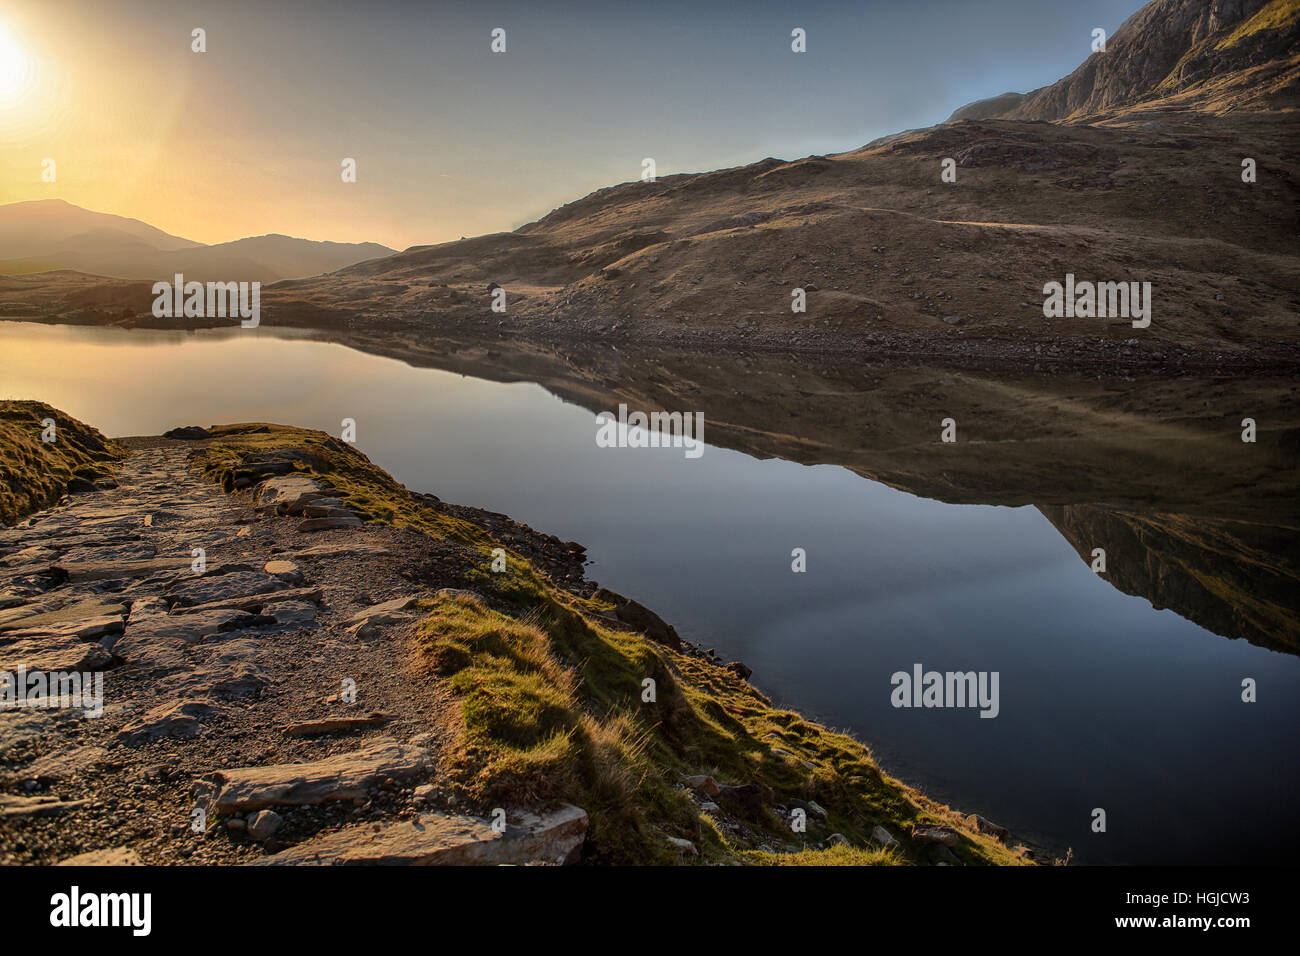 a bracketed exposure of Llyn Llydaw snowdonia national park. - Stock Image